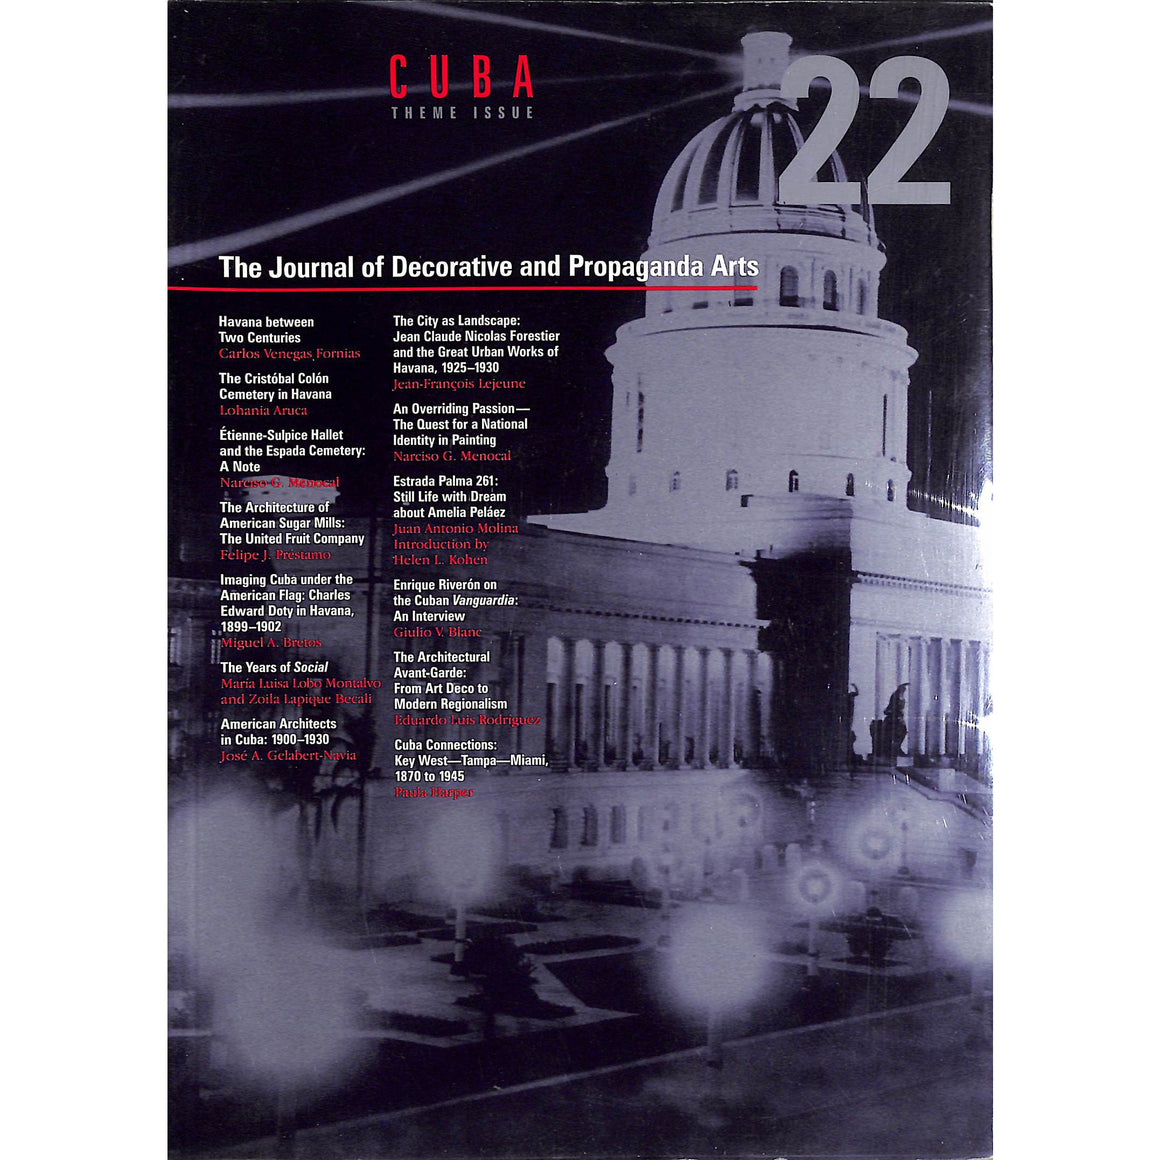 The Journal of Decorative and Propaganda Arts Cuba Theme Issue #22